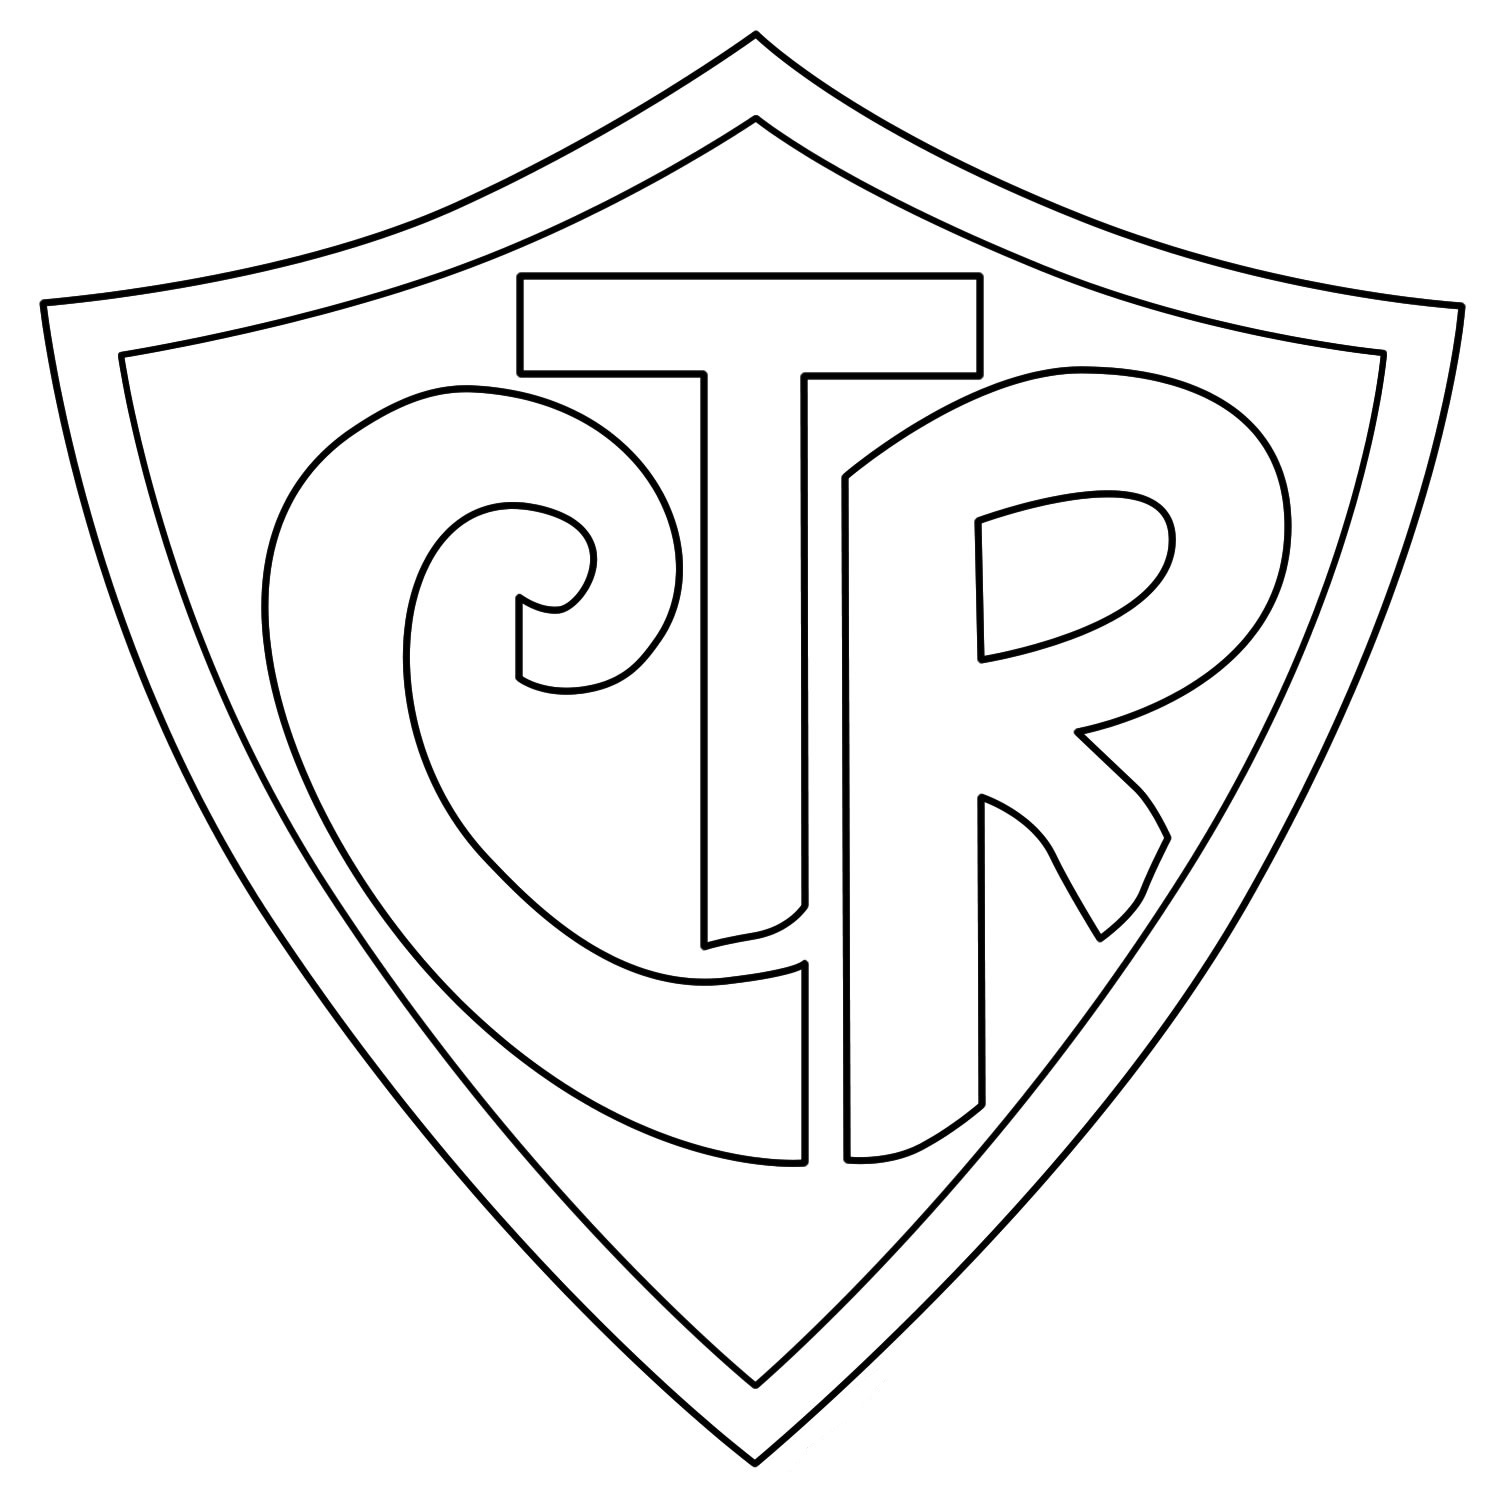 ctr coloring page 5